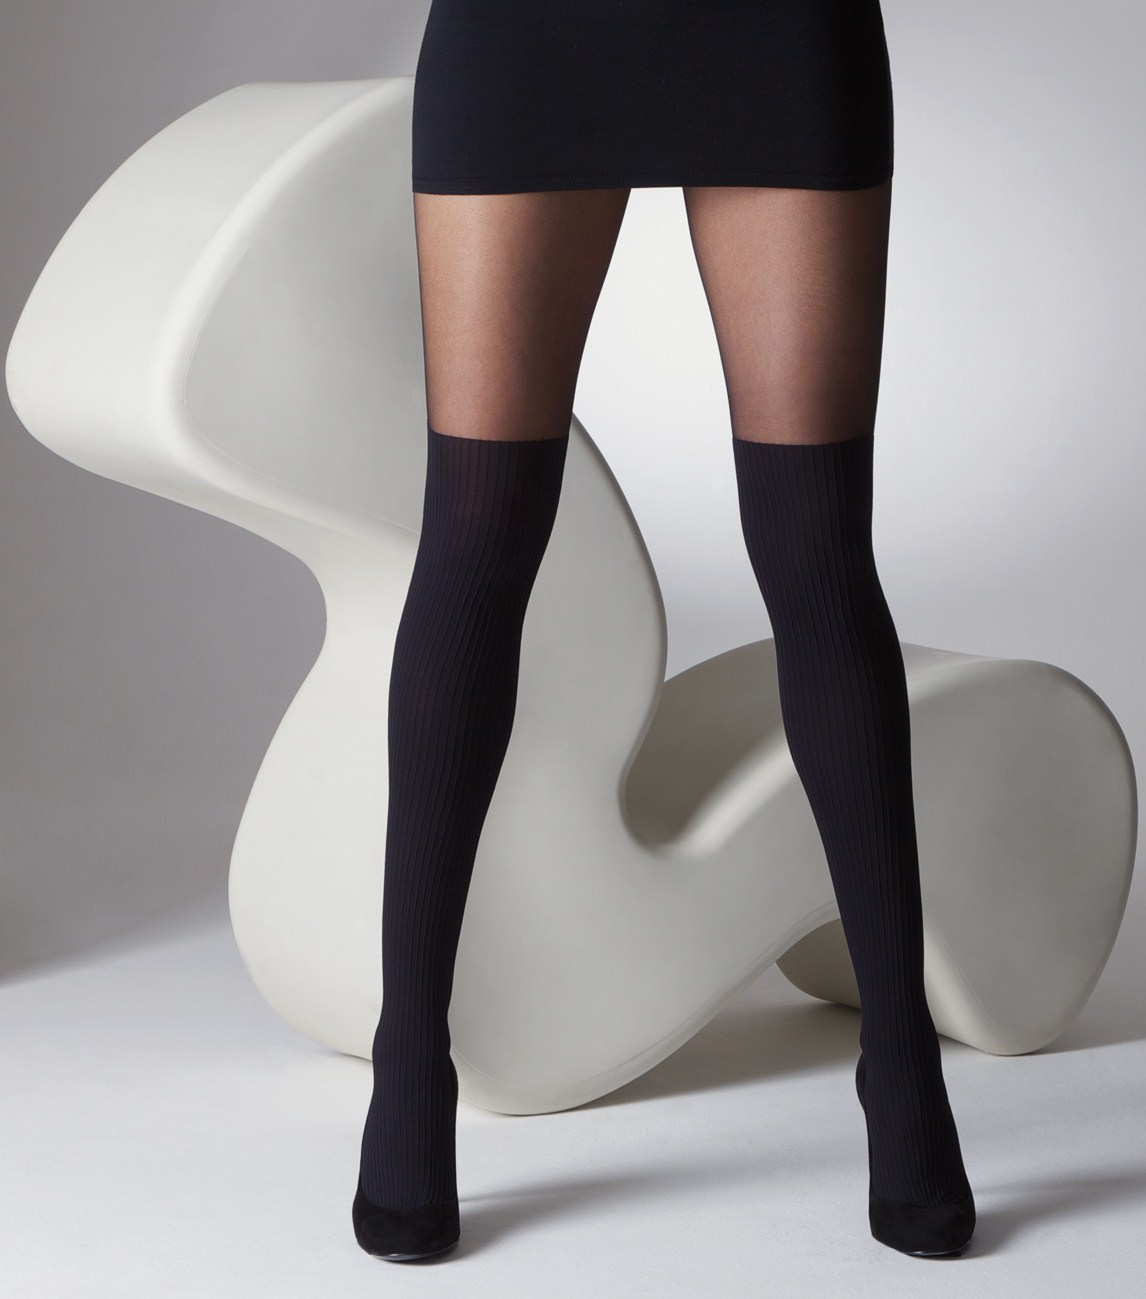 Discover our range of socks and tights for women at ASOS. Shop for women's denier tights, leggings, hosiery, bodysuits and women's socks for every occasion.